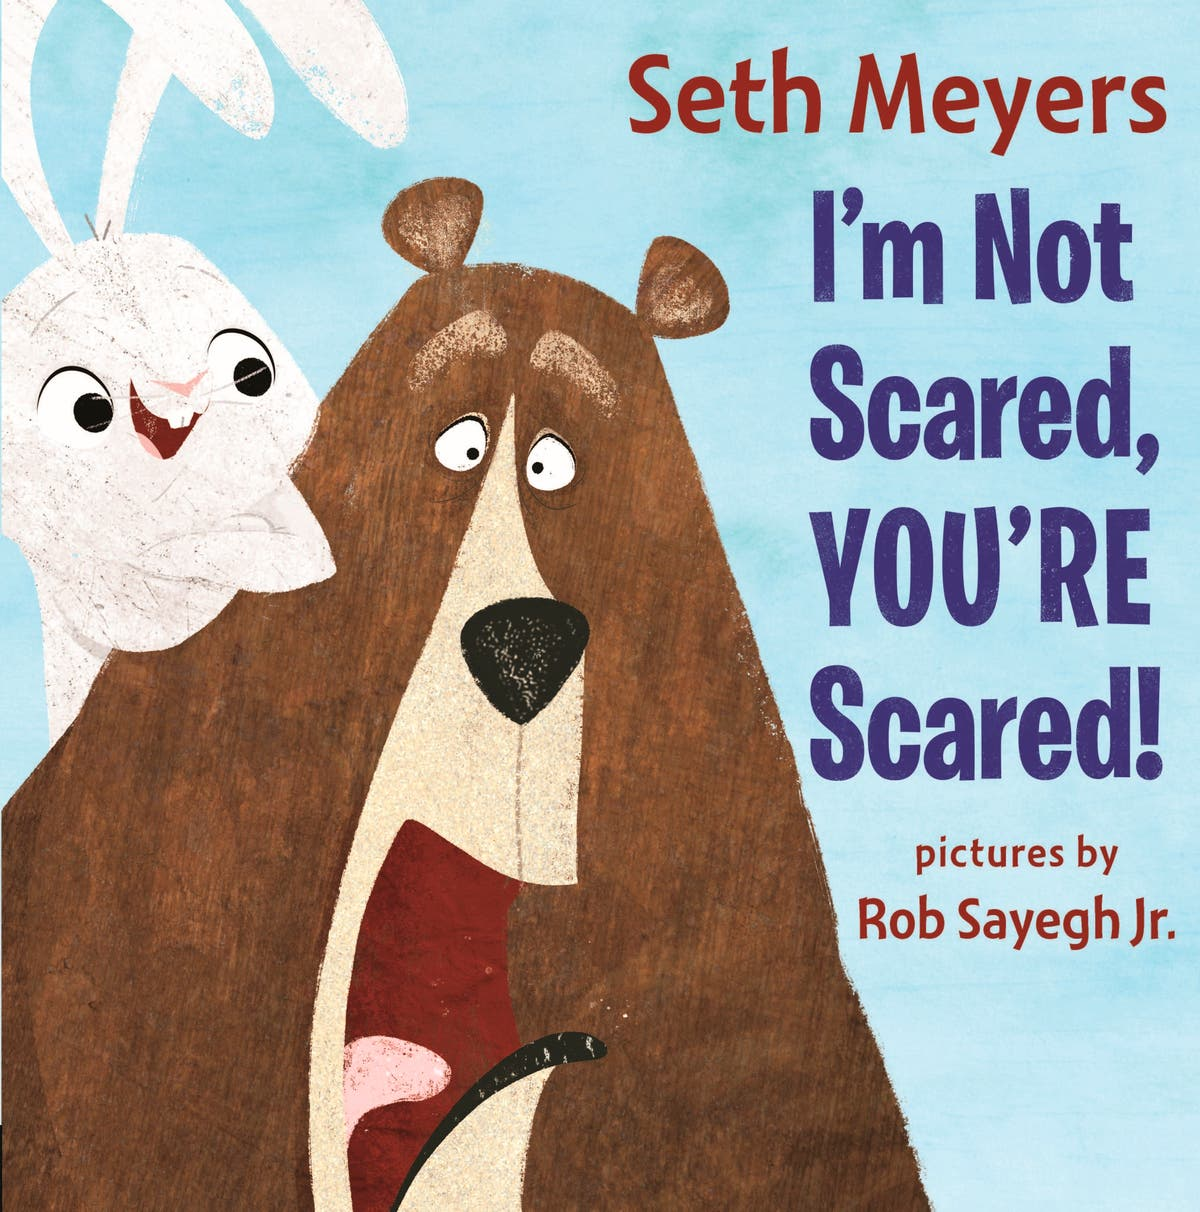 Bear and Hare: Seth Meyers picture book is an animal tale